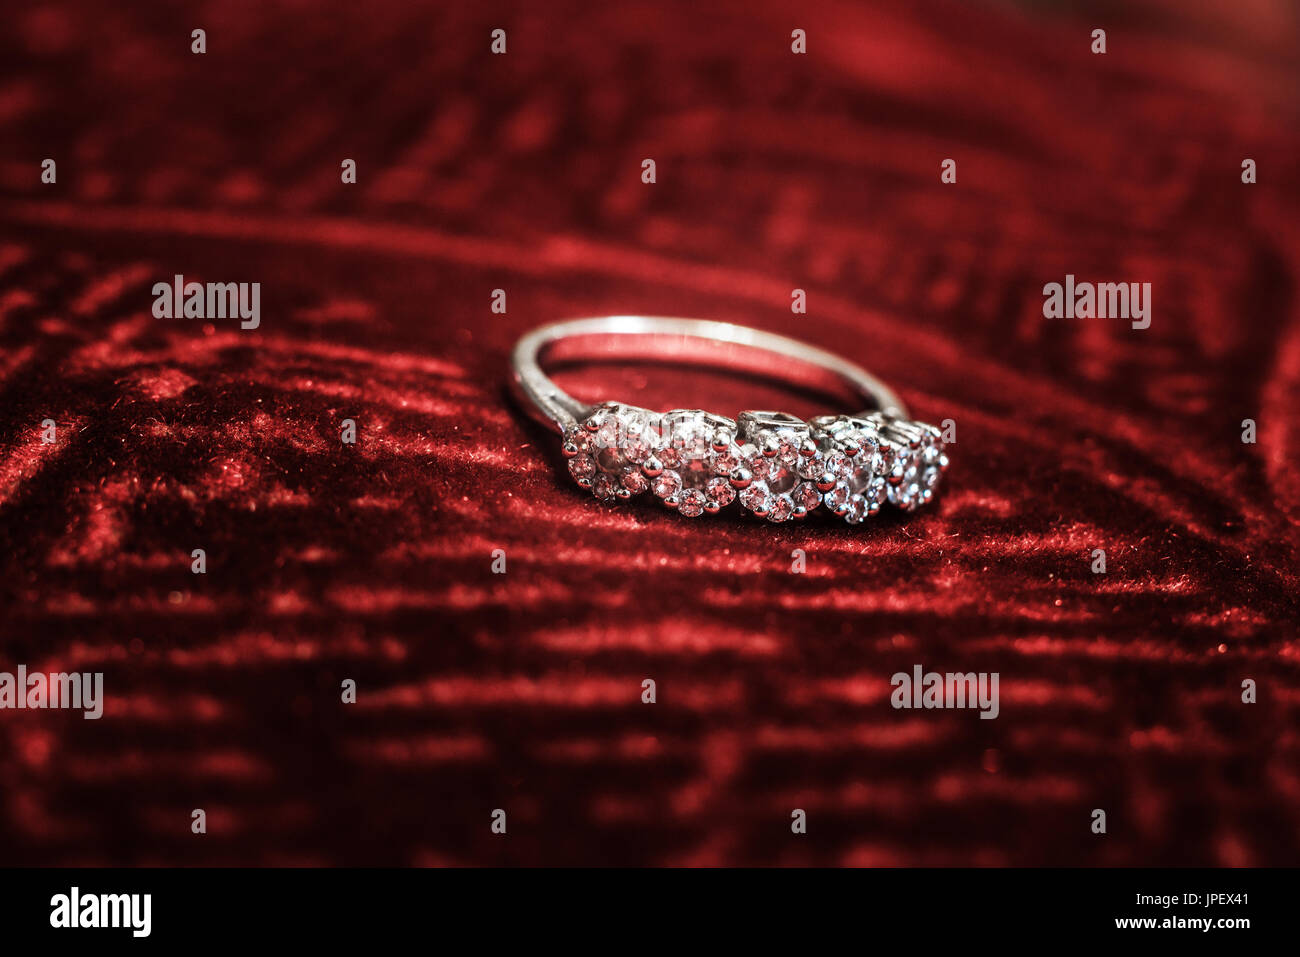 A Macro Shot Of A Diamond Ring On A Red Velvet Cloth Stock Photo